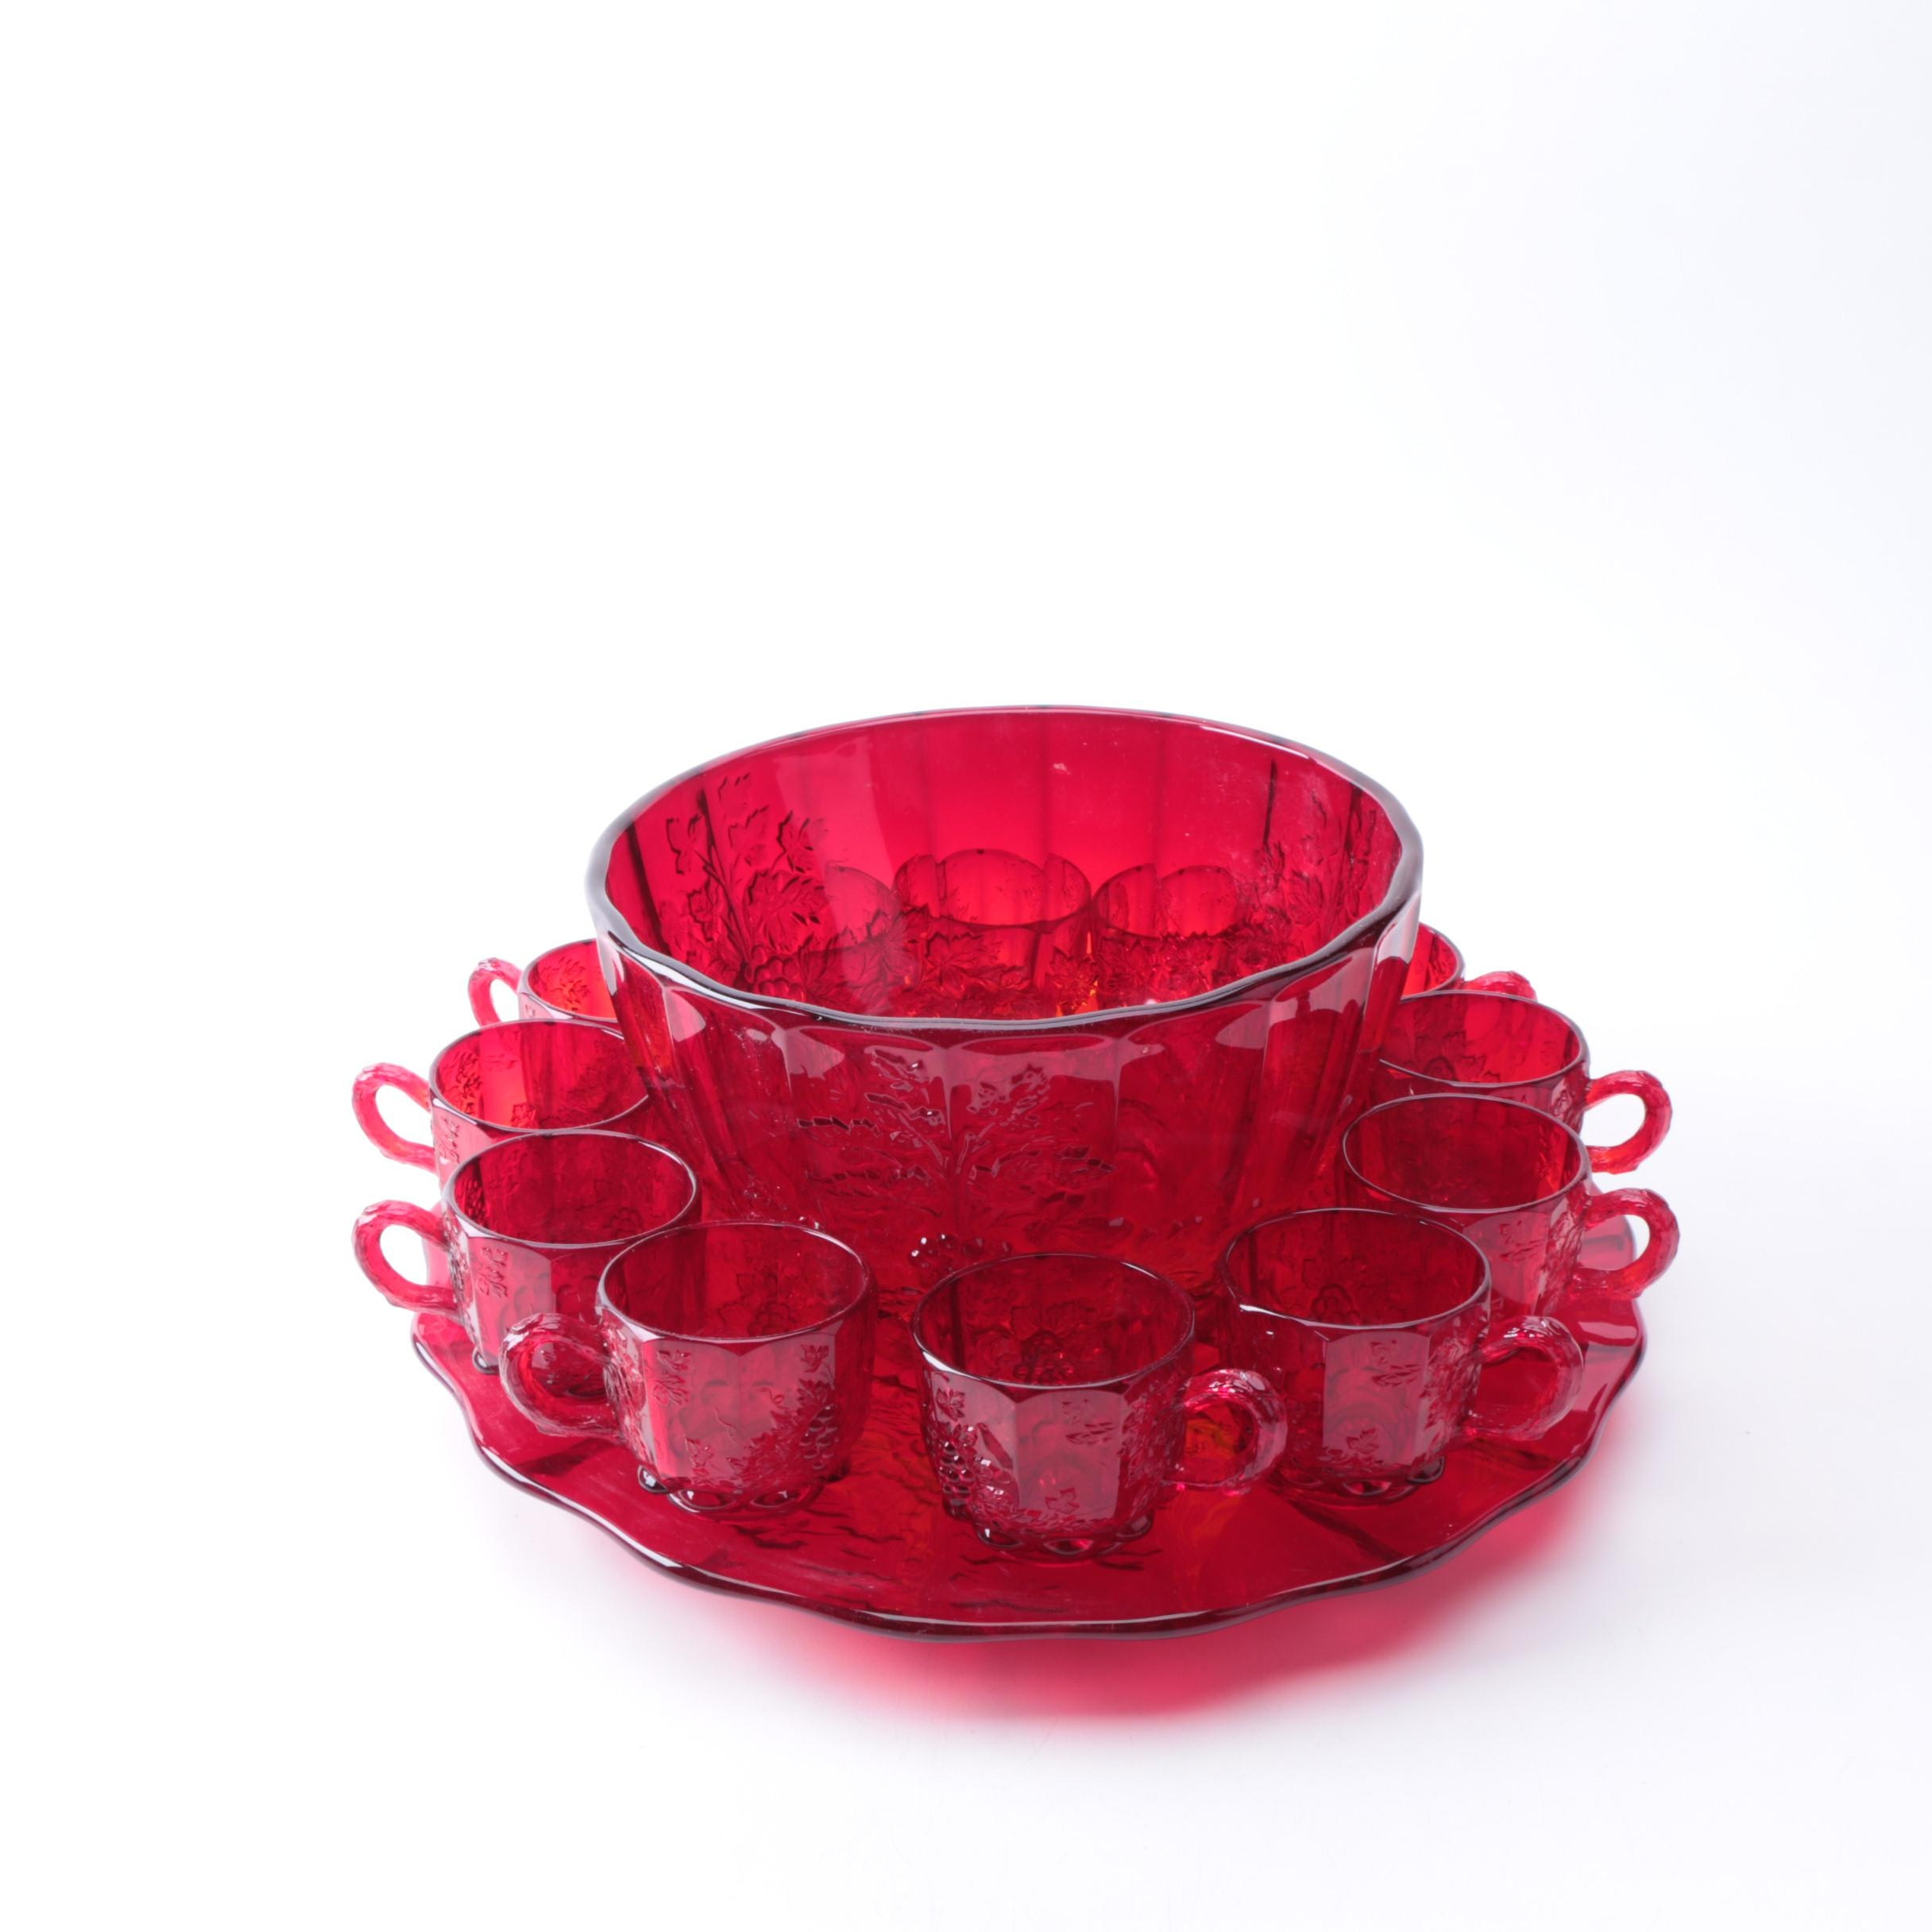 L.G. Wright Ruby Red Depression Glass Punch Bowl Set